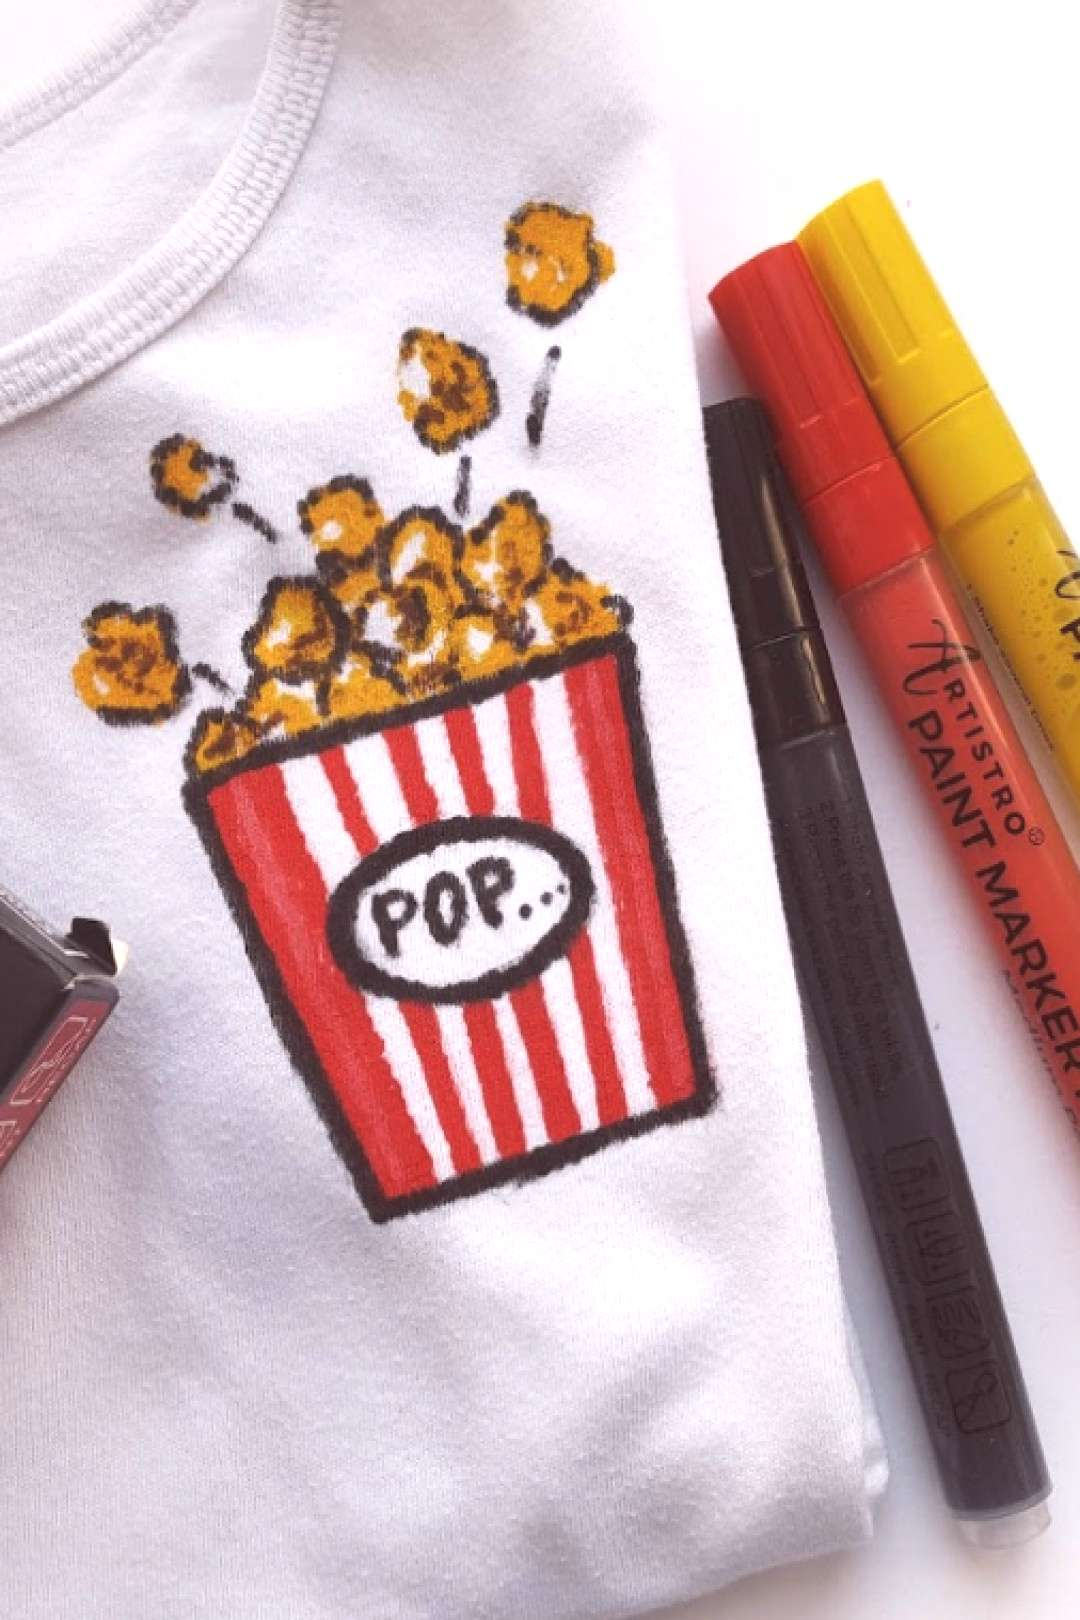 DIY Popcorn Tshirt design using fabric paint pens. Easy to create fabric painting DIY t-shirts by h